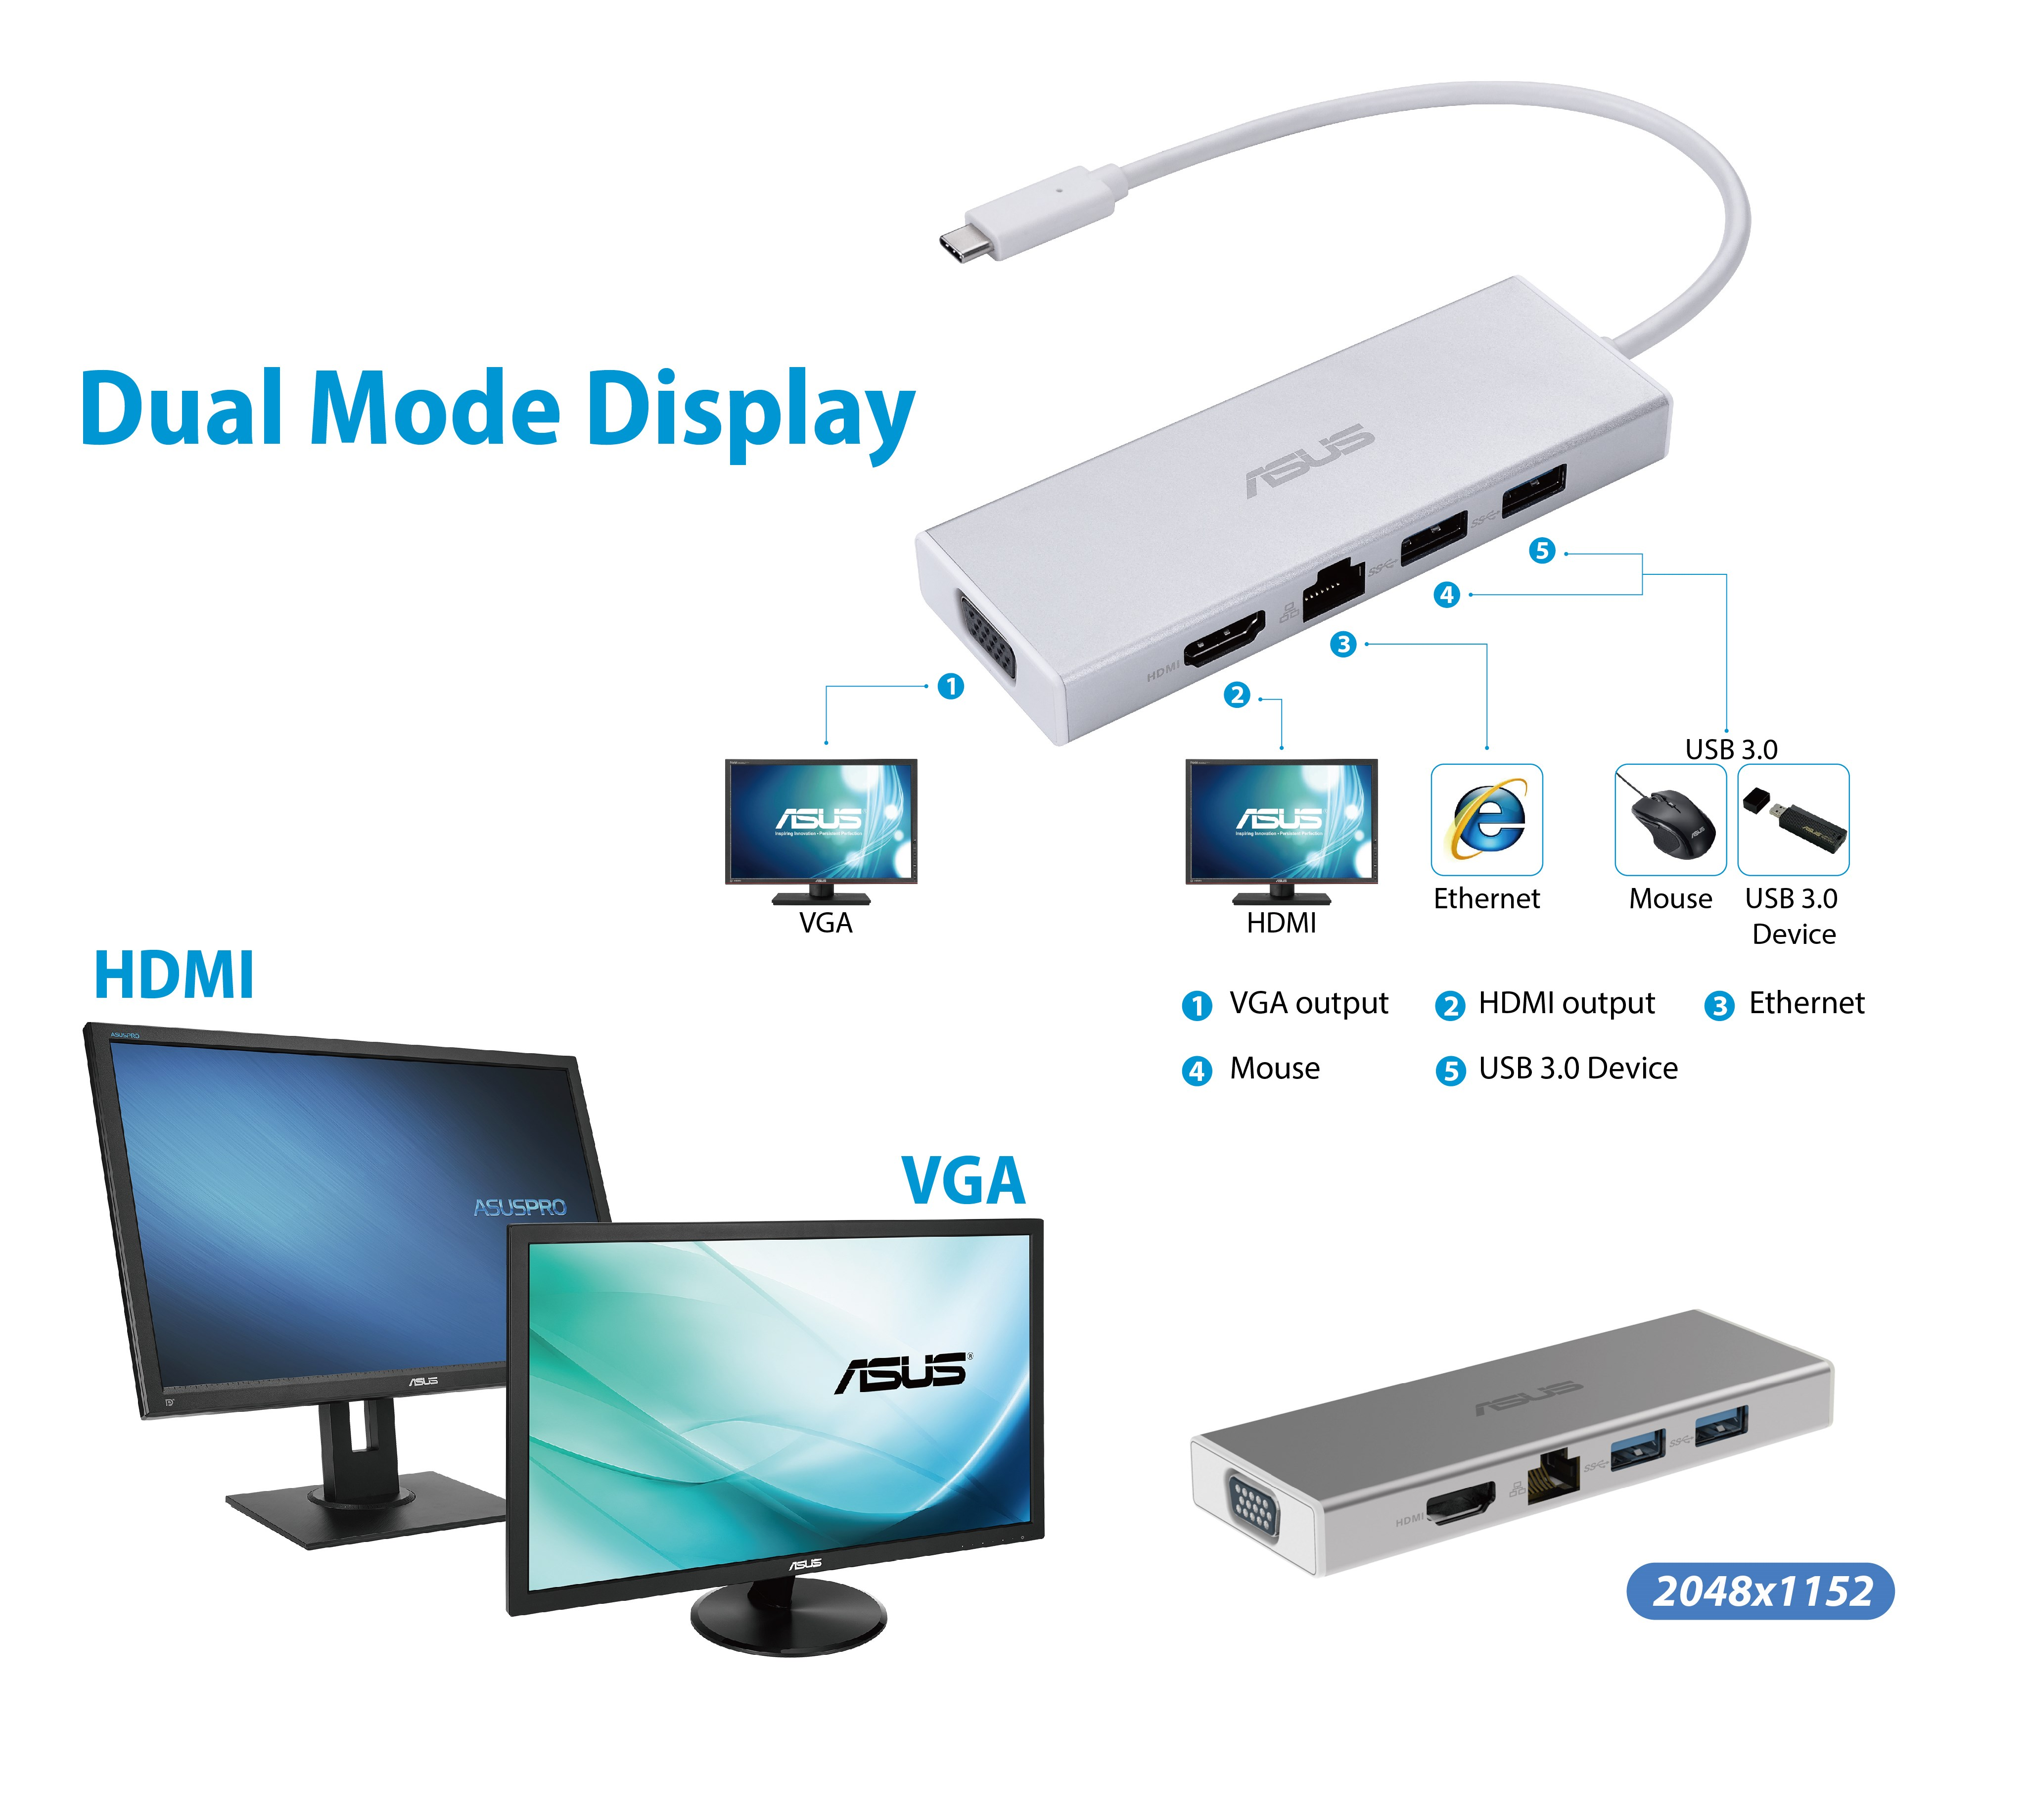 asus-os200-usb-typec-multiport-dongle-ac37778-2.jpg